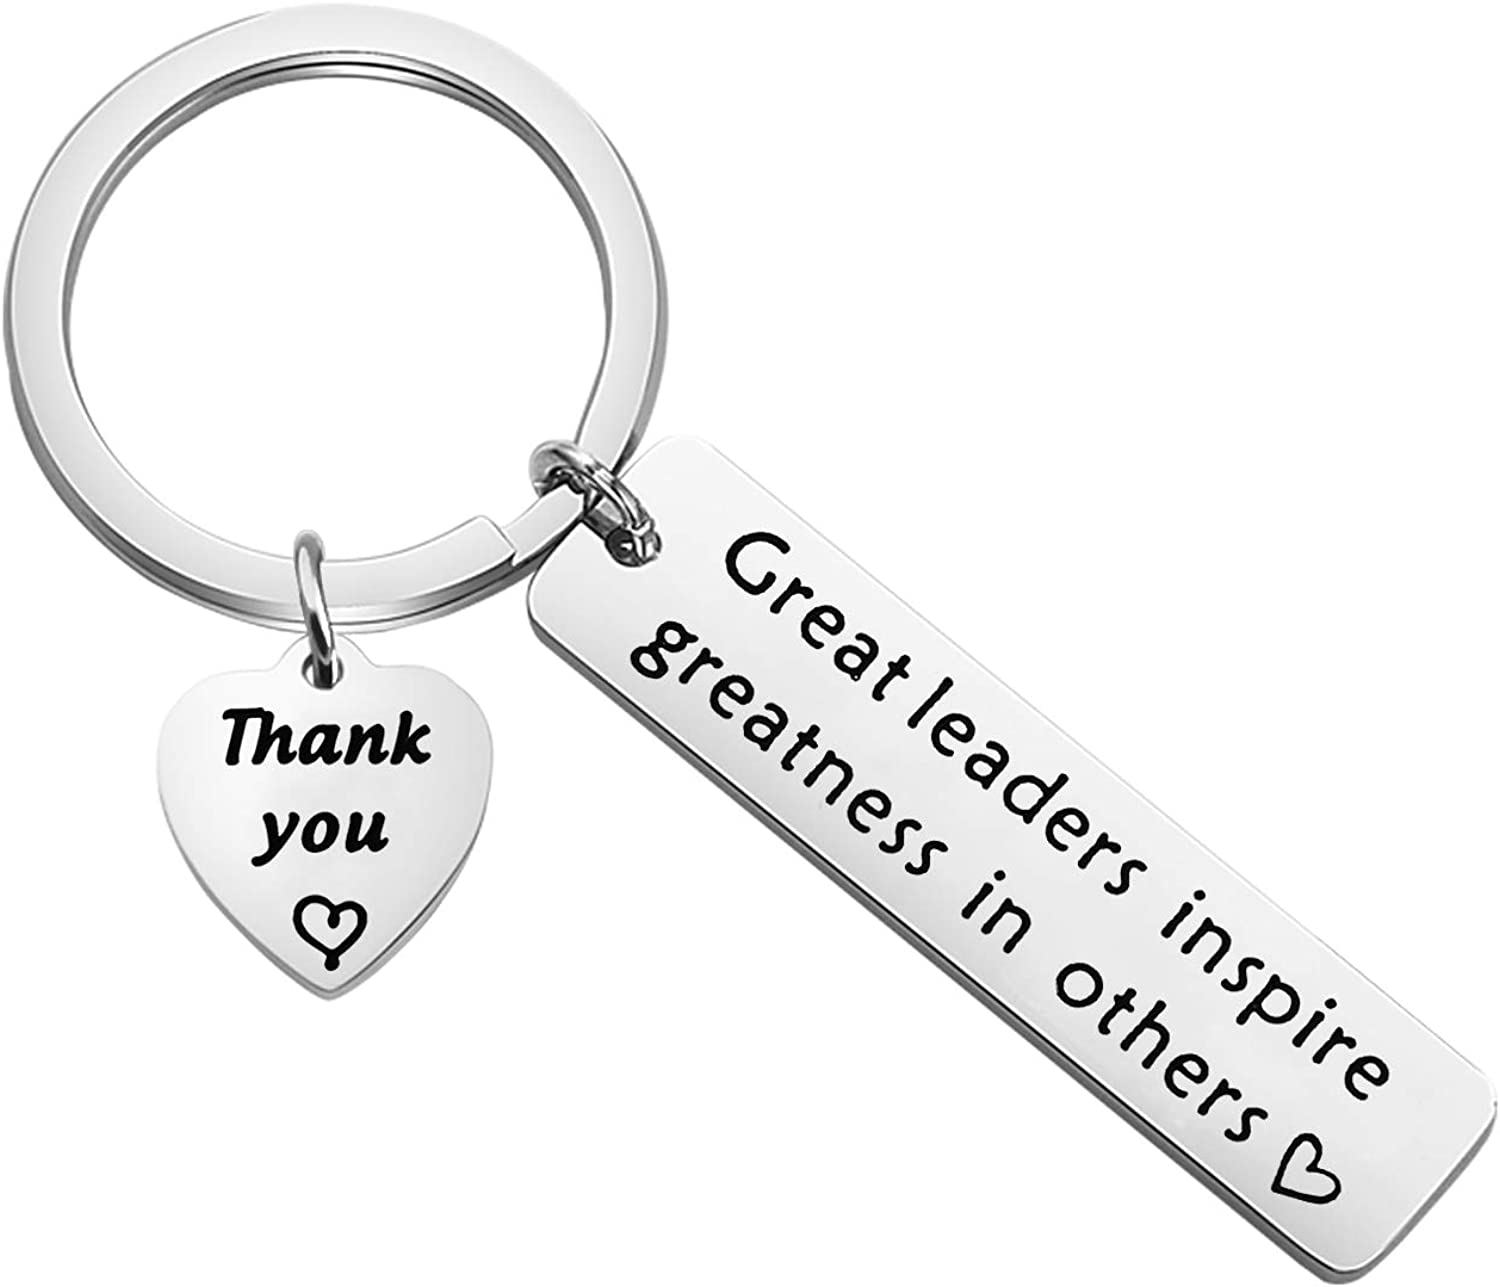 Great Leader Inspire Greatness in Other Keychain Gifts Boss Keychain for Women Leader Boss for Boss Day Gift Idea Birthday Christmas Retirement Gift Appreciation Gift Boss Day Gift for Him Her